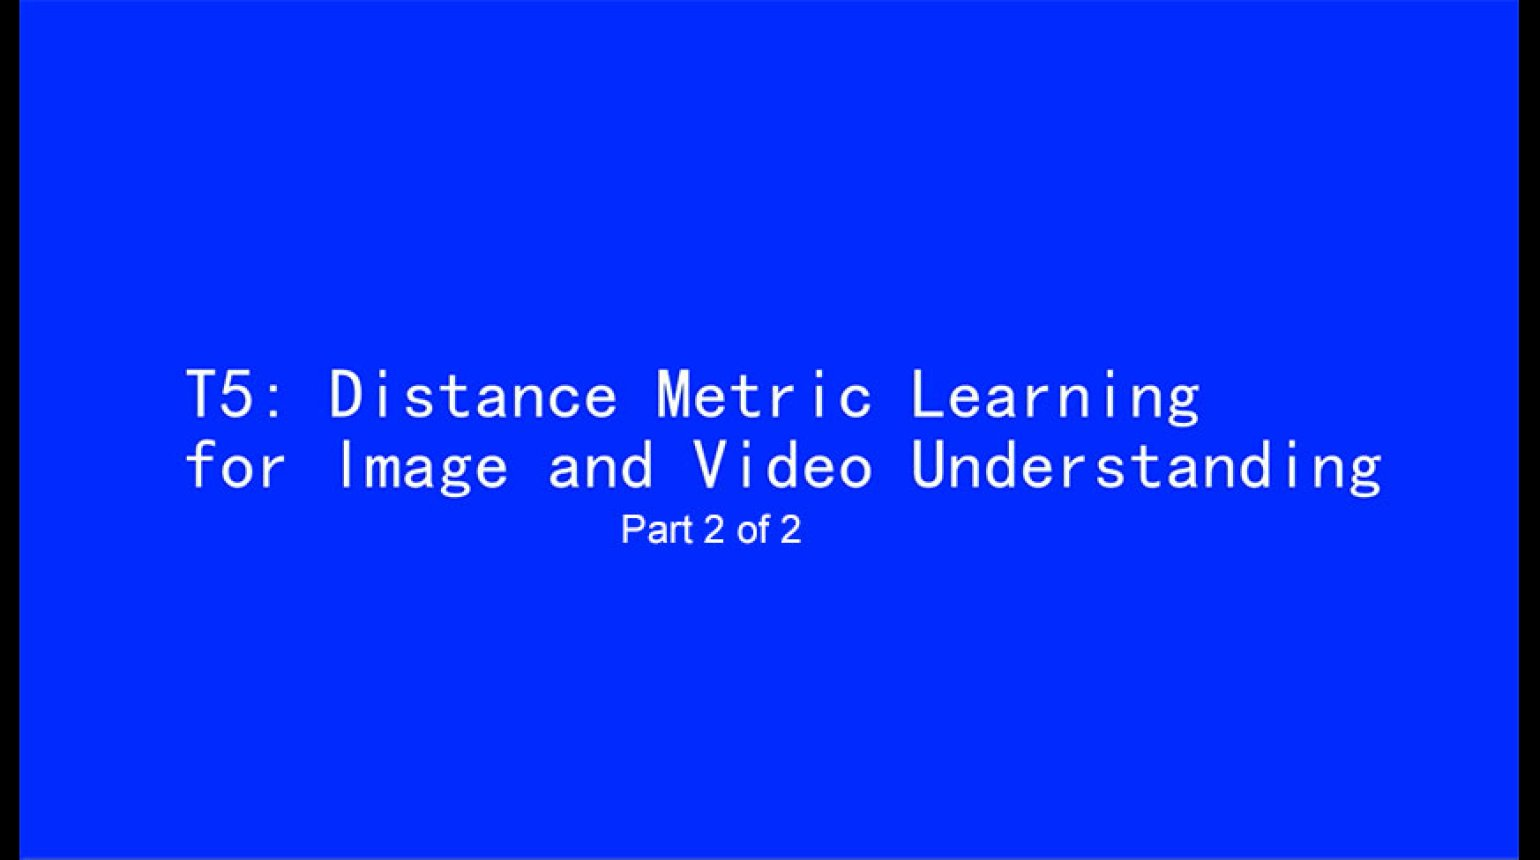 ICIP 2017 Tutorial - Distance Metric Learning for Image and Video Understanding [Part 2 of 2]